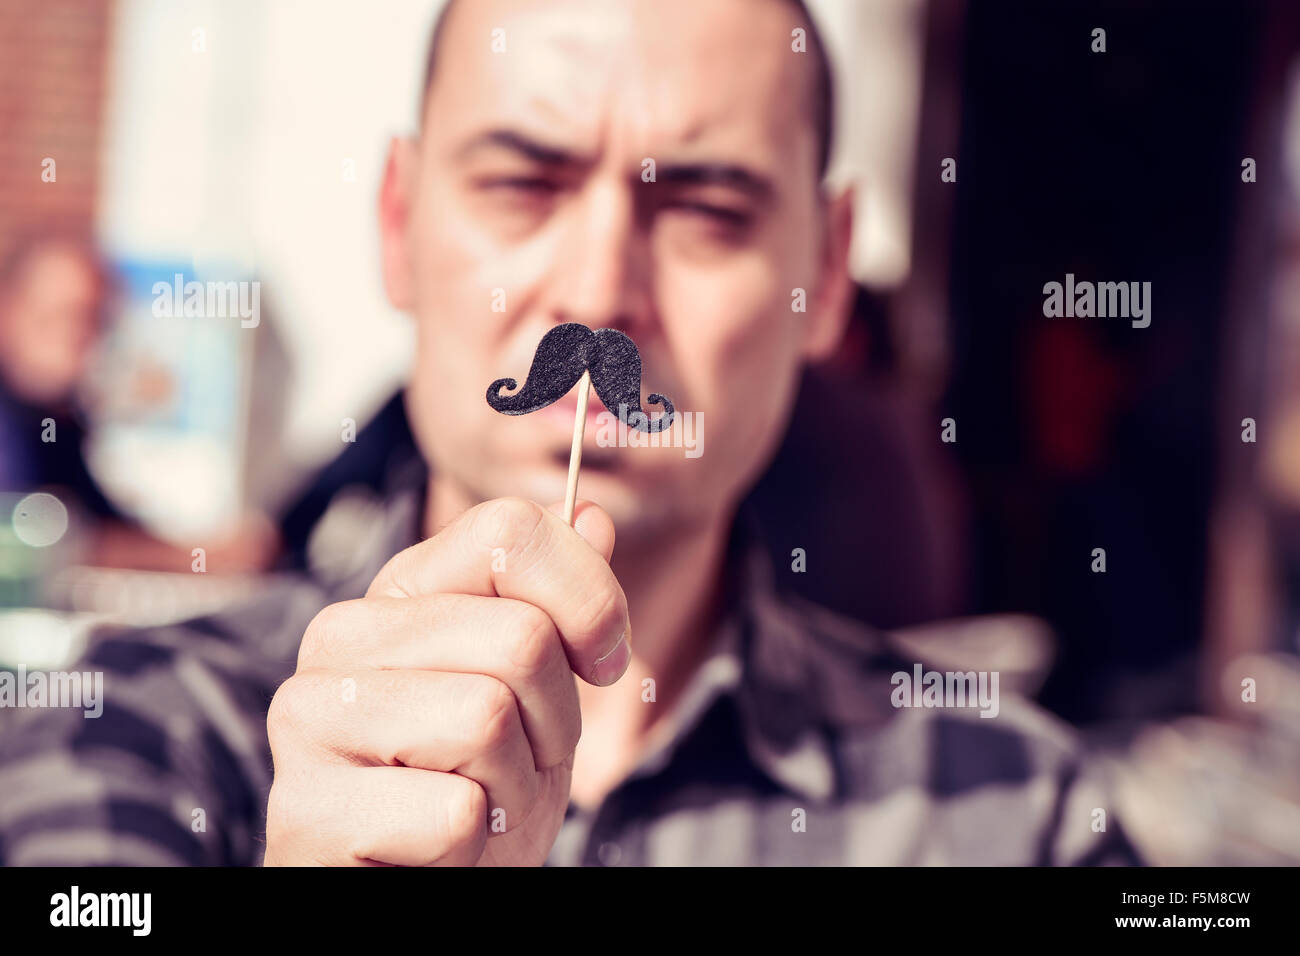 a young caucasian man holding a fake moustache in a stick in front of his face - Stock Image